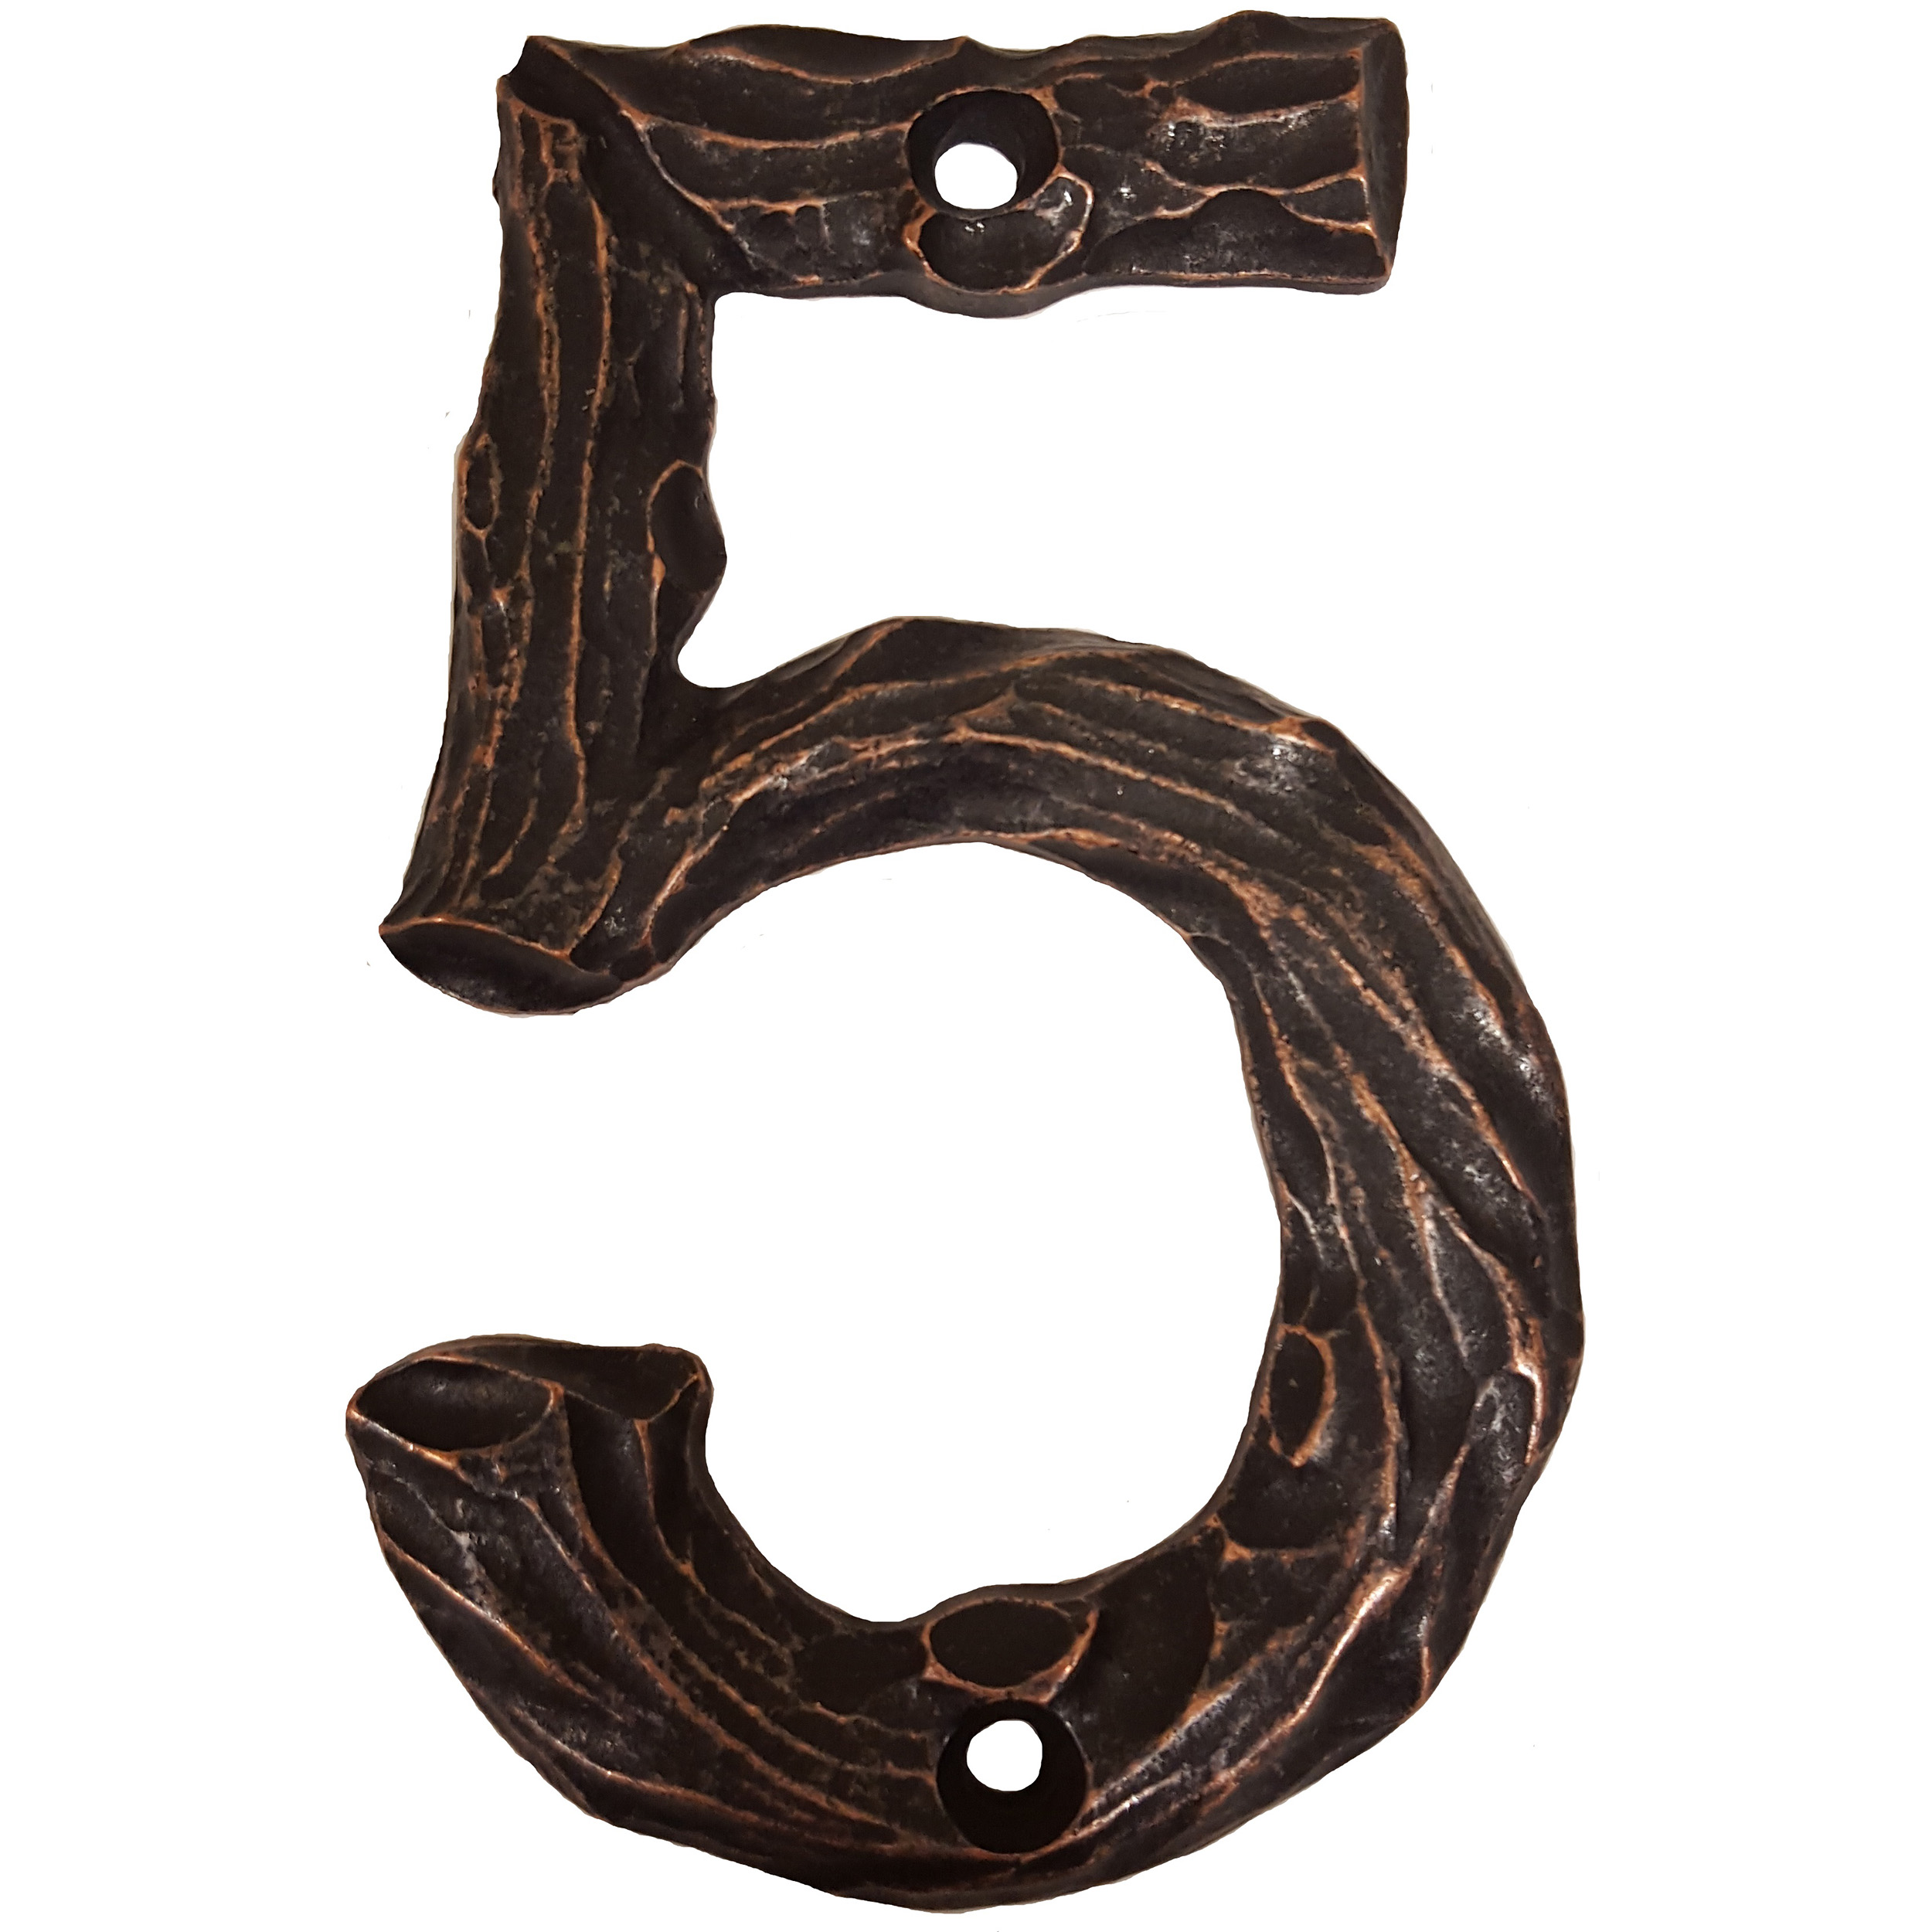 LHN5-ORB Log House Number 5, Oil Rubbed Bronze, 1 piece